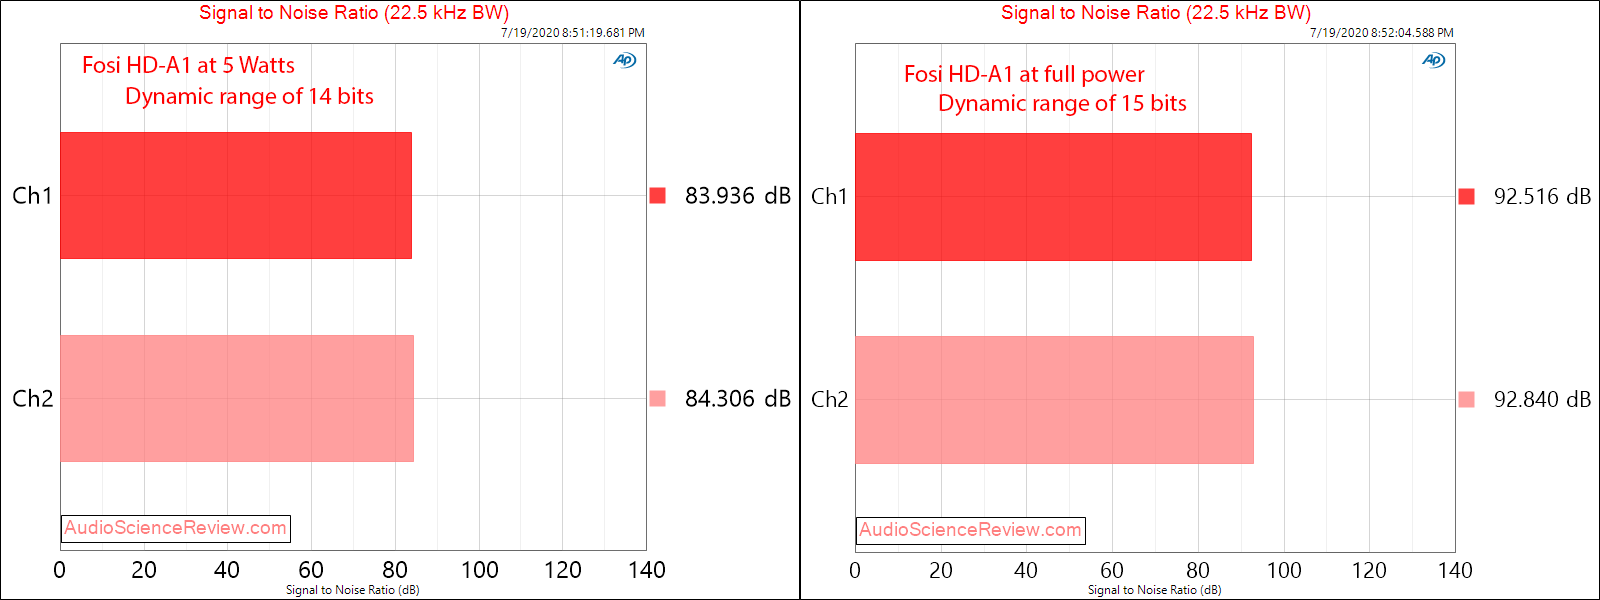 Fosi Audio HD-A1 Hi-fi Power Amplifier SNR Measurements.png